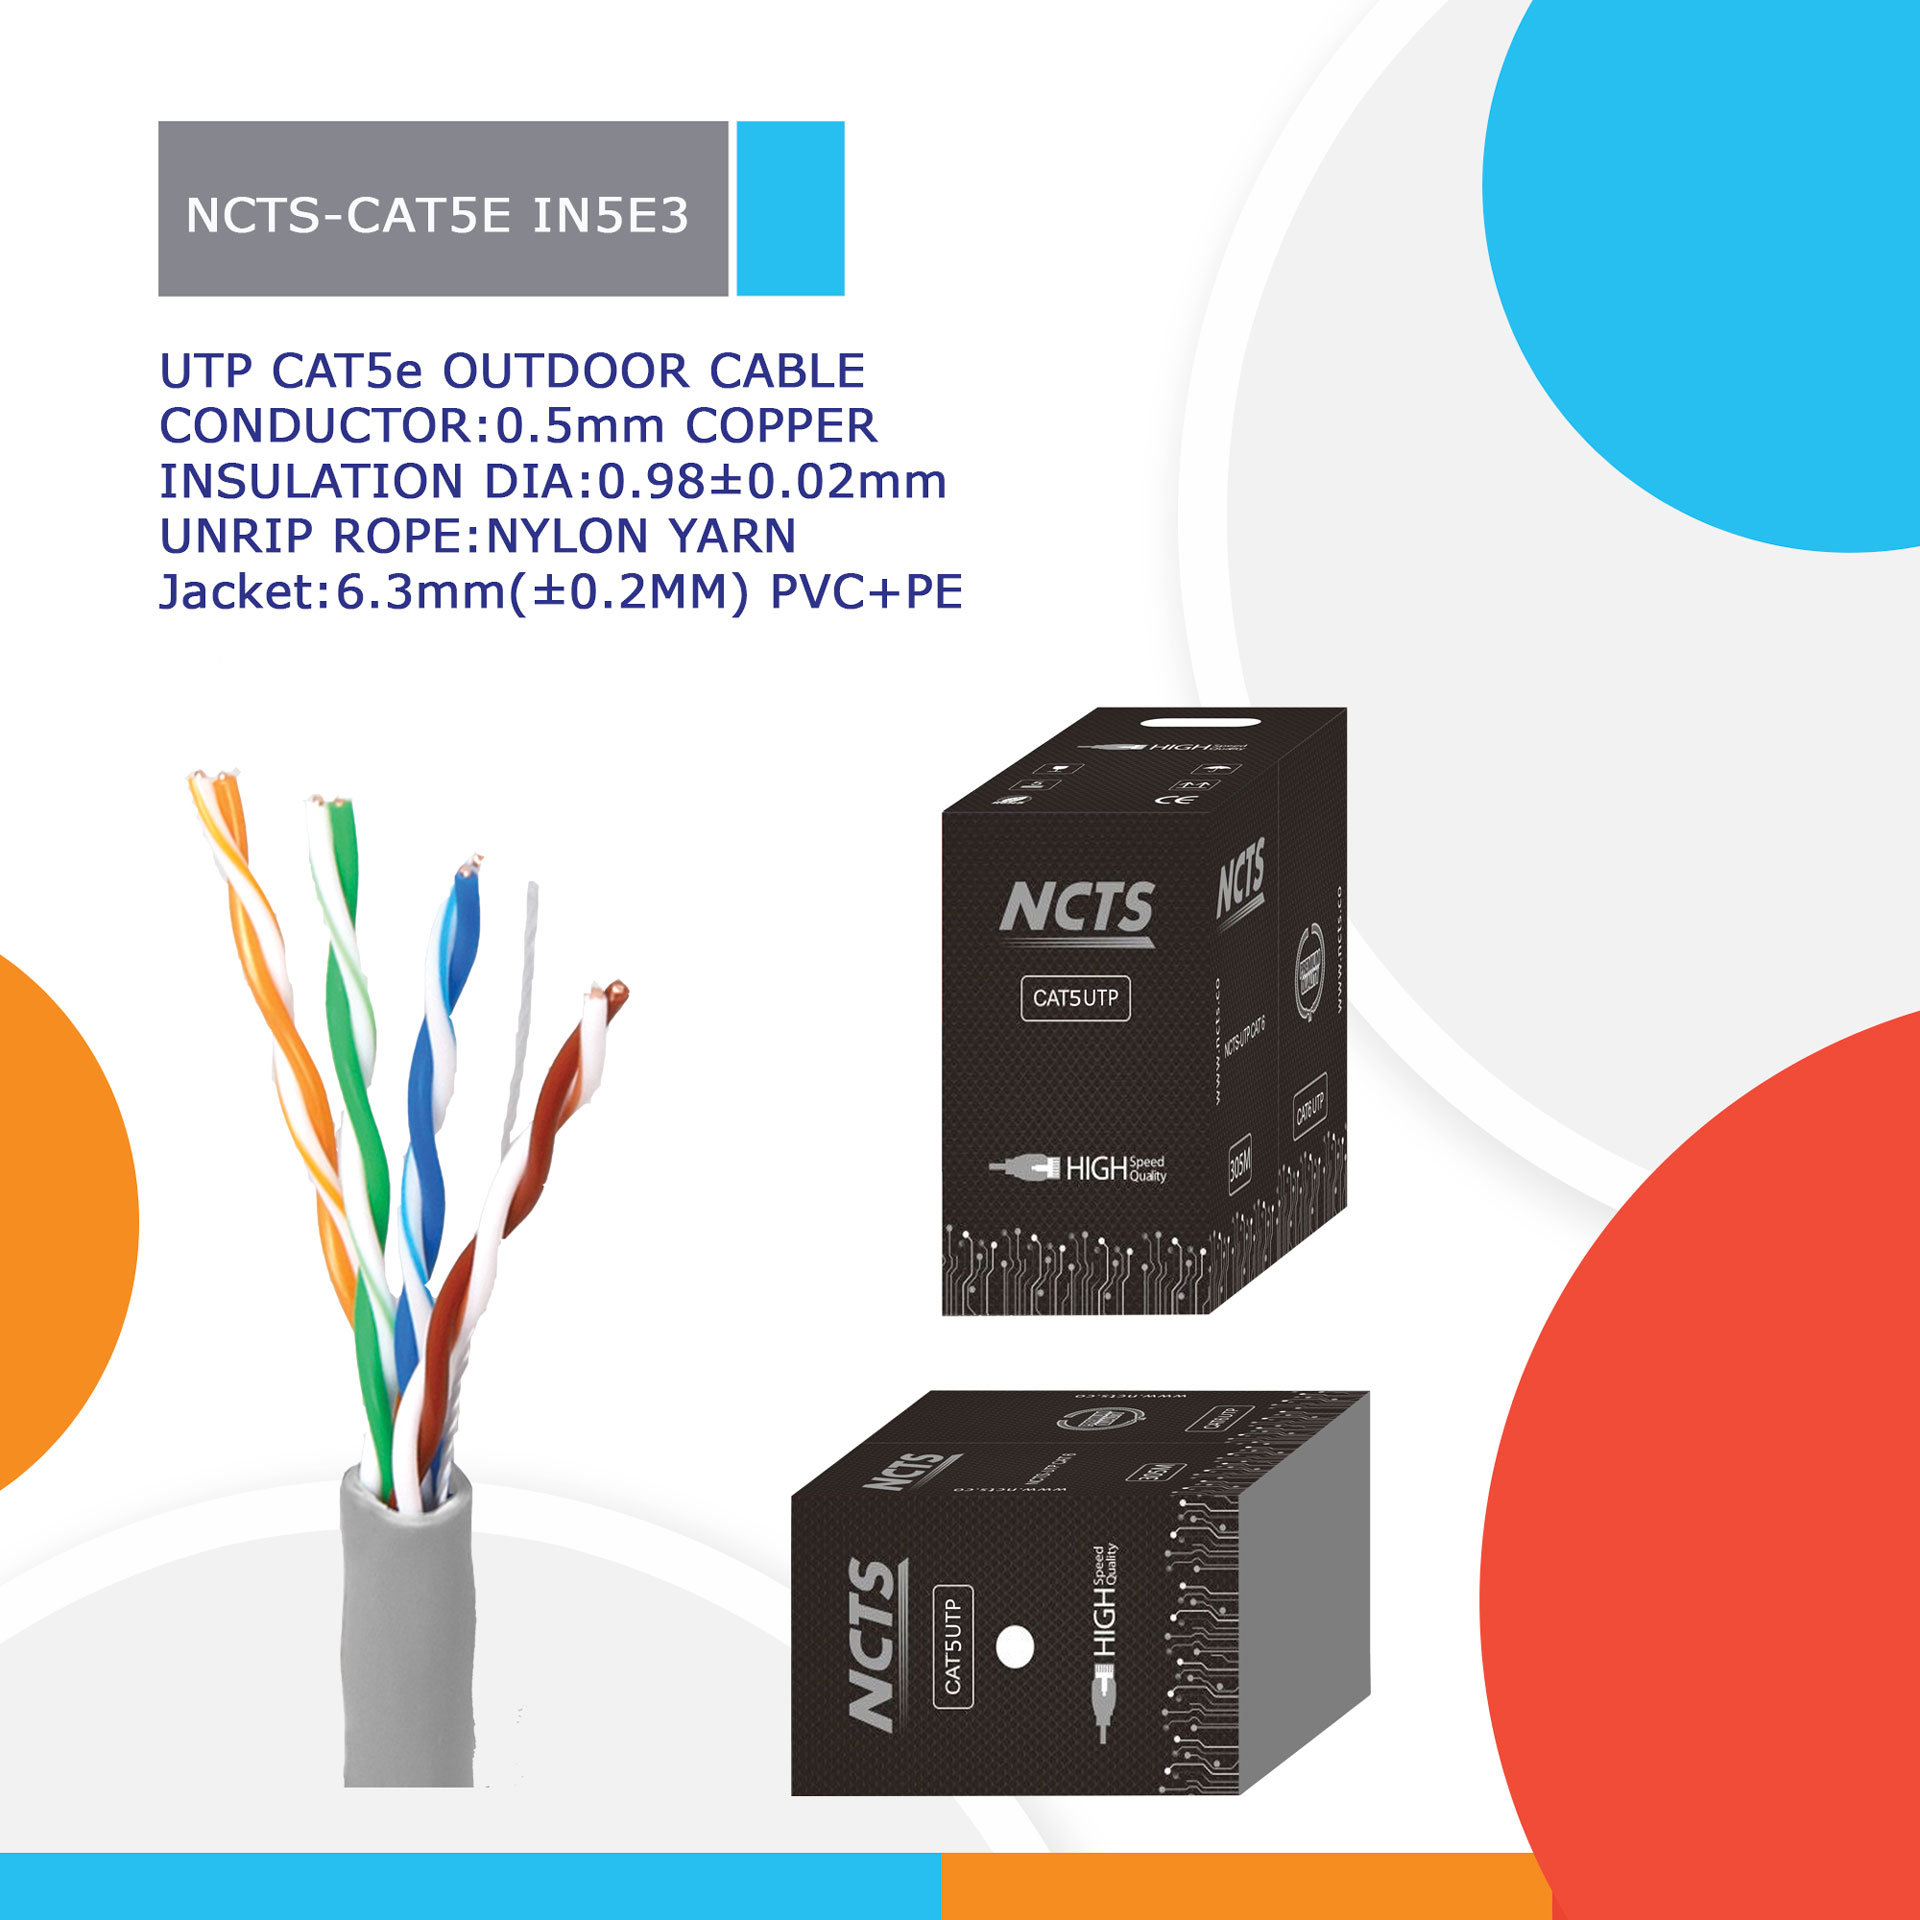 NCTS-CAT5E IN5E3